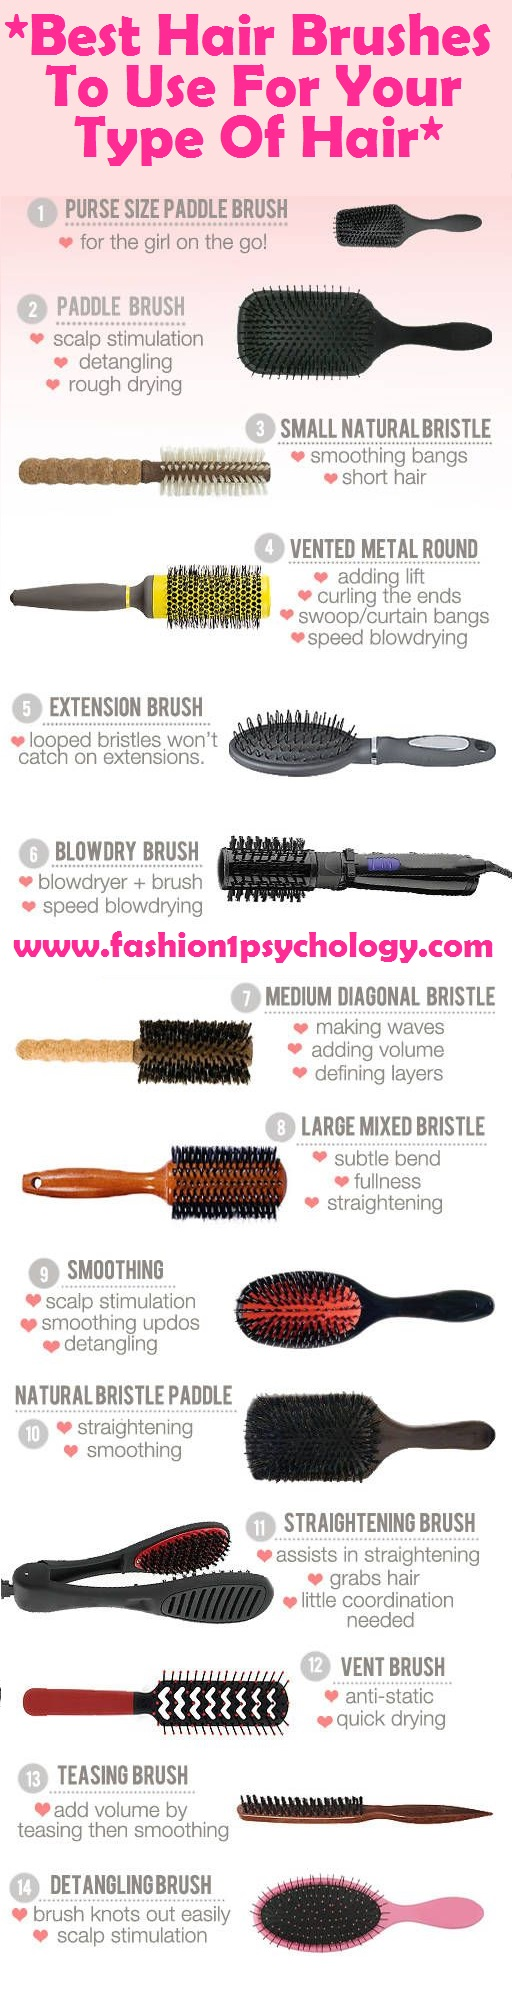 BRUSHES FASHION